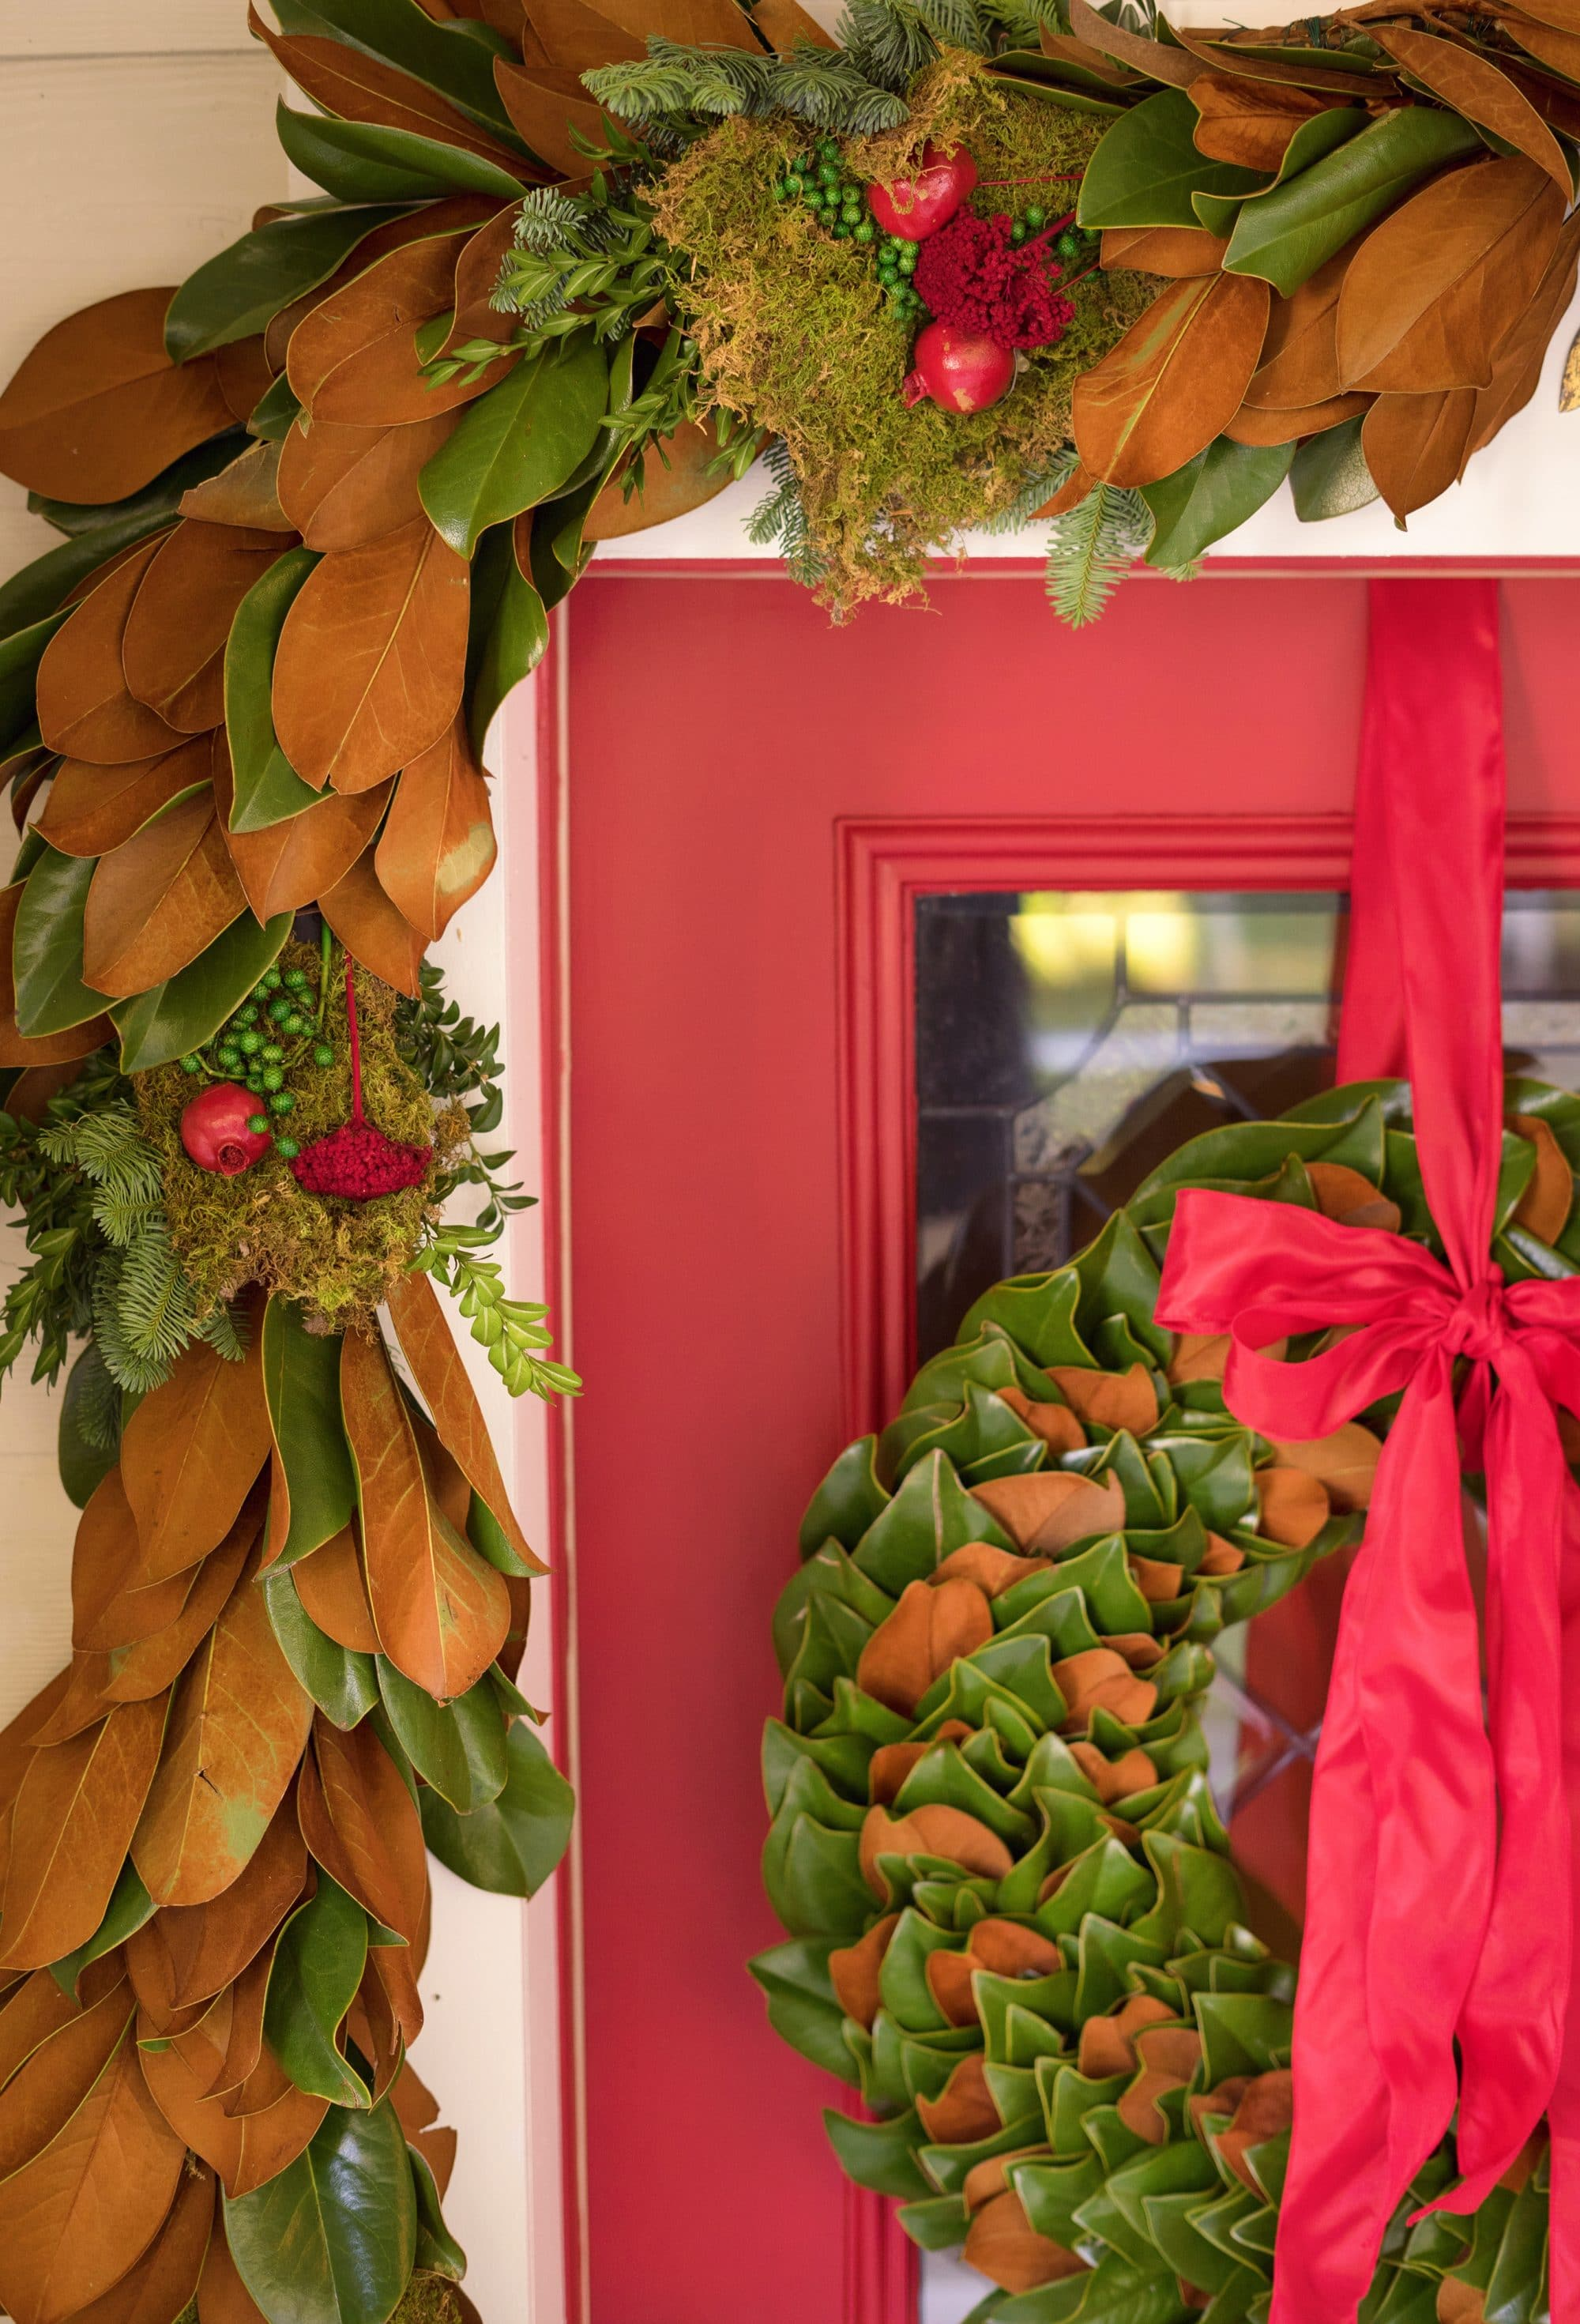 blogger ashley brookes 4 steps to fresh front door holiday decor wwwashleybrookedesigns